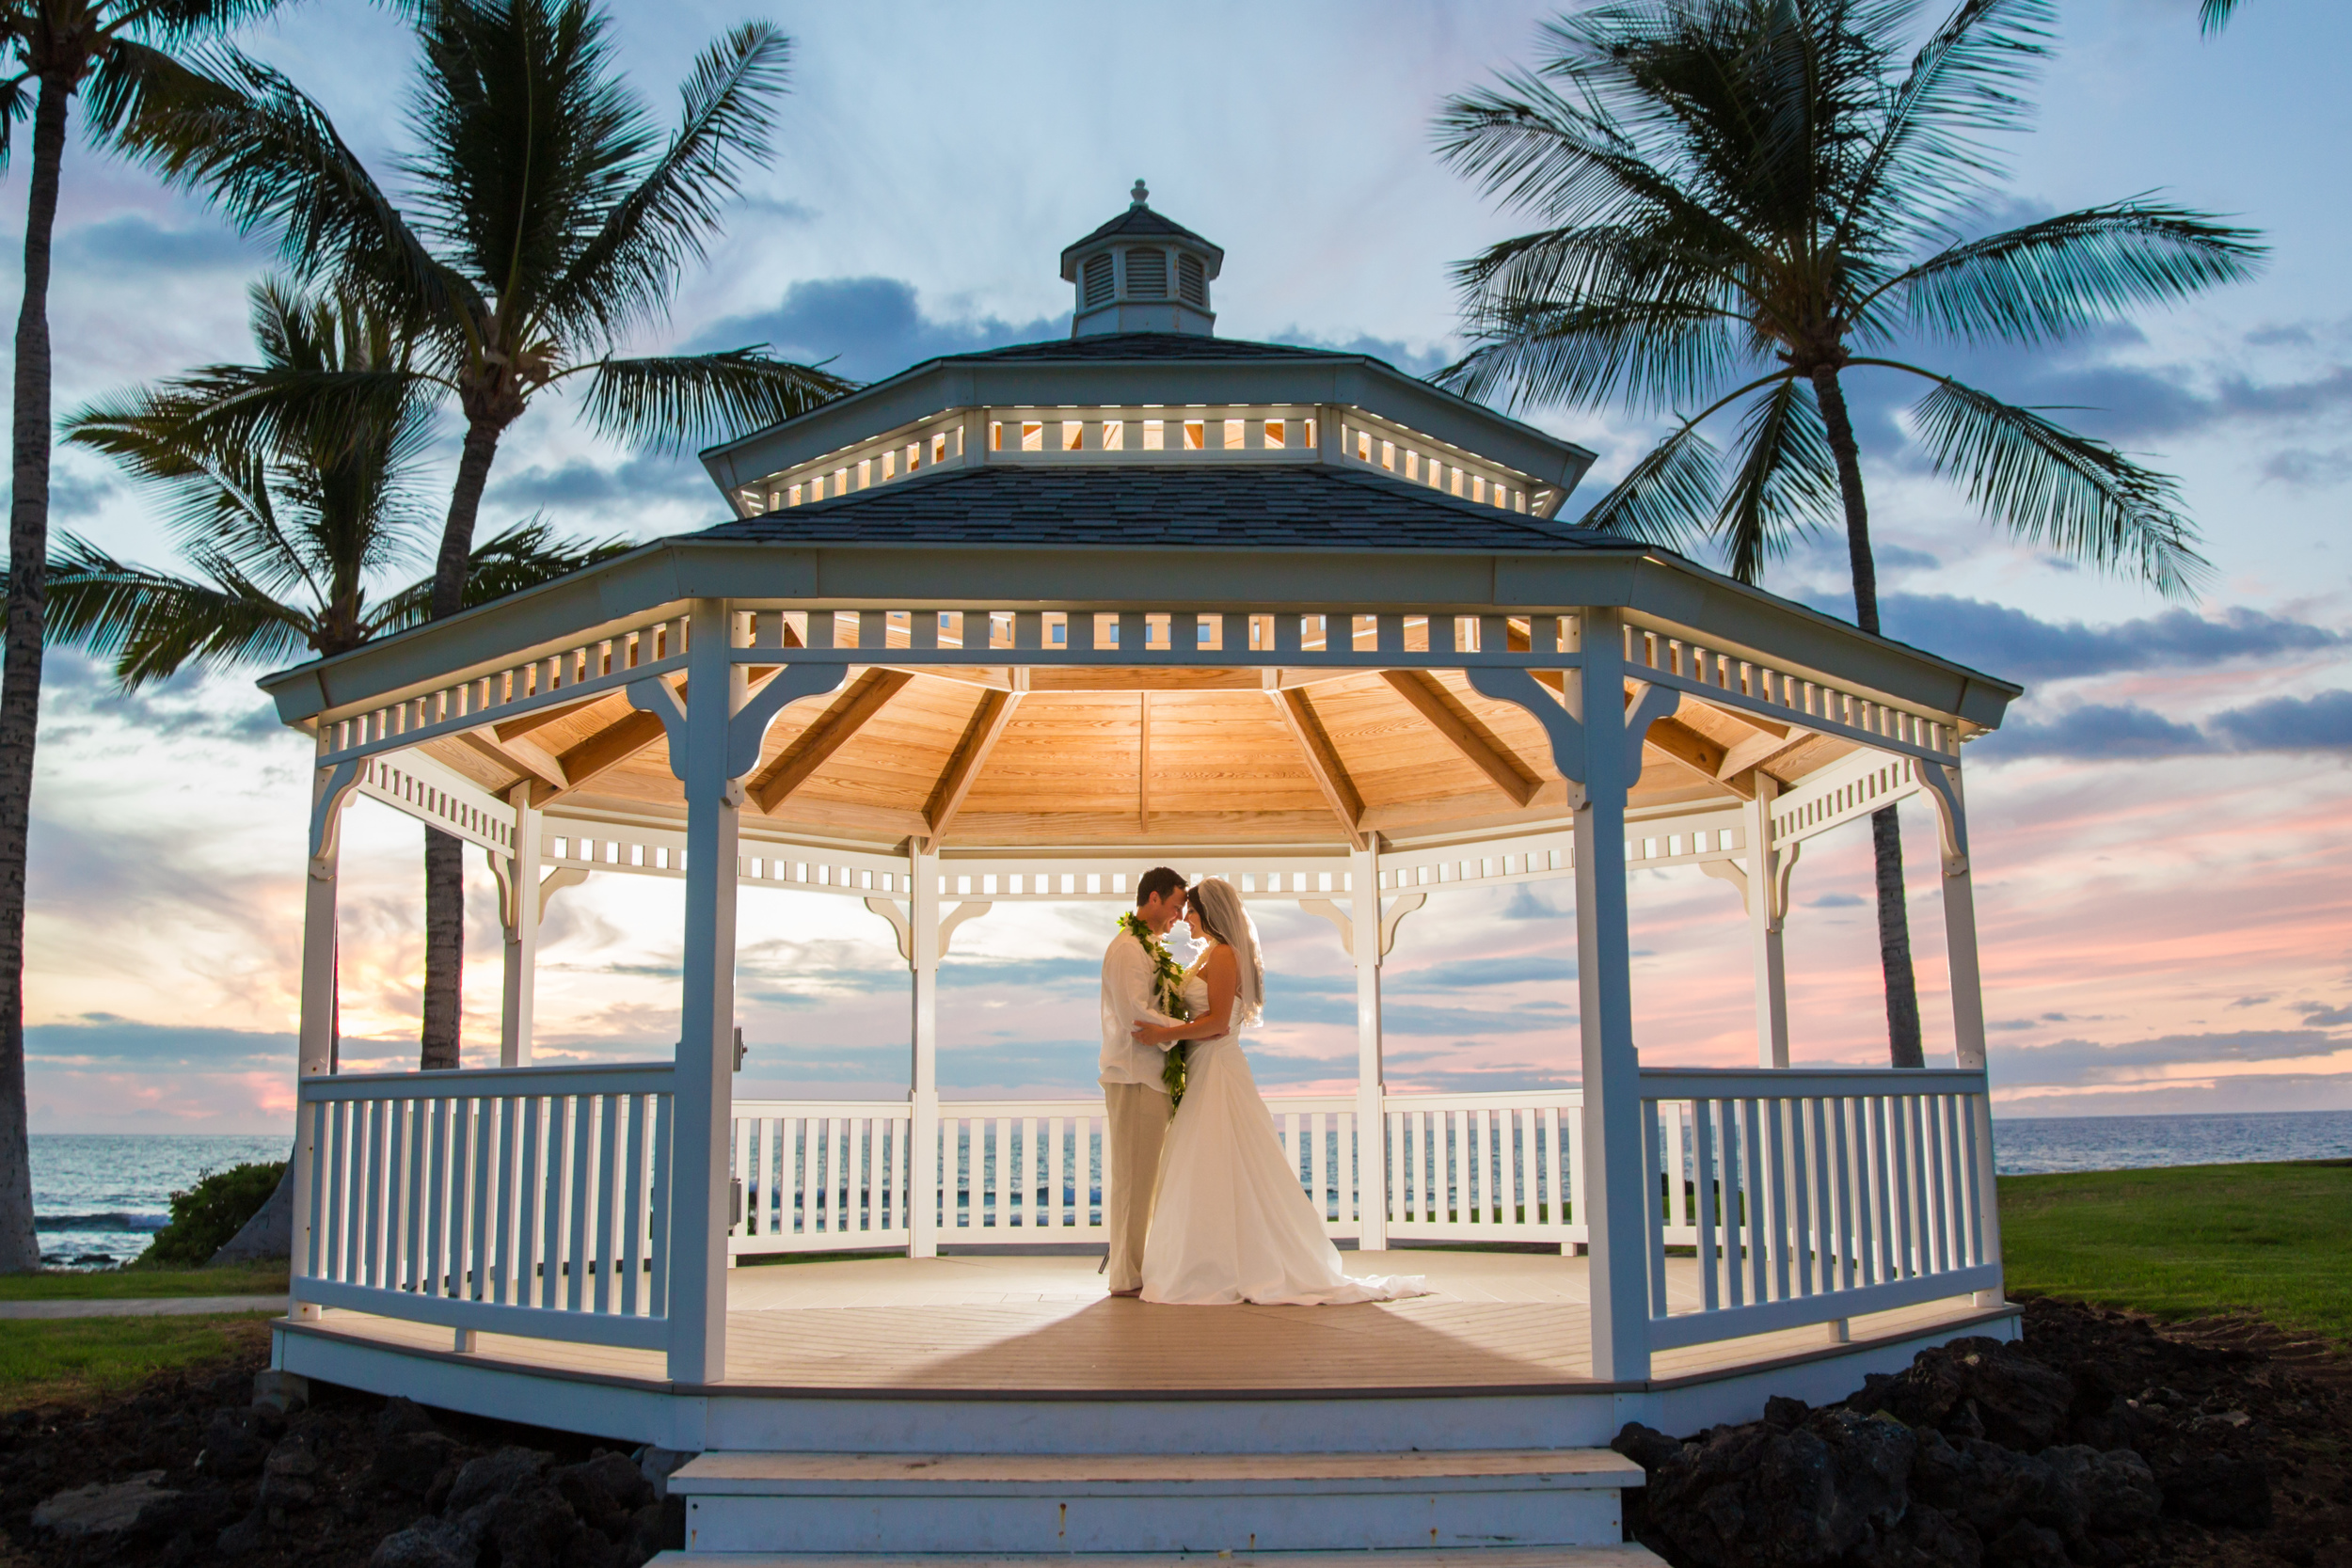 The Gazebo at Turtle Pointe, Fairmont Orchid